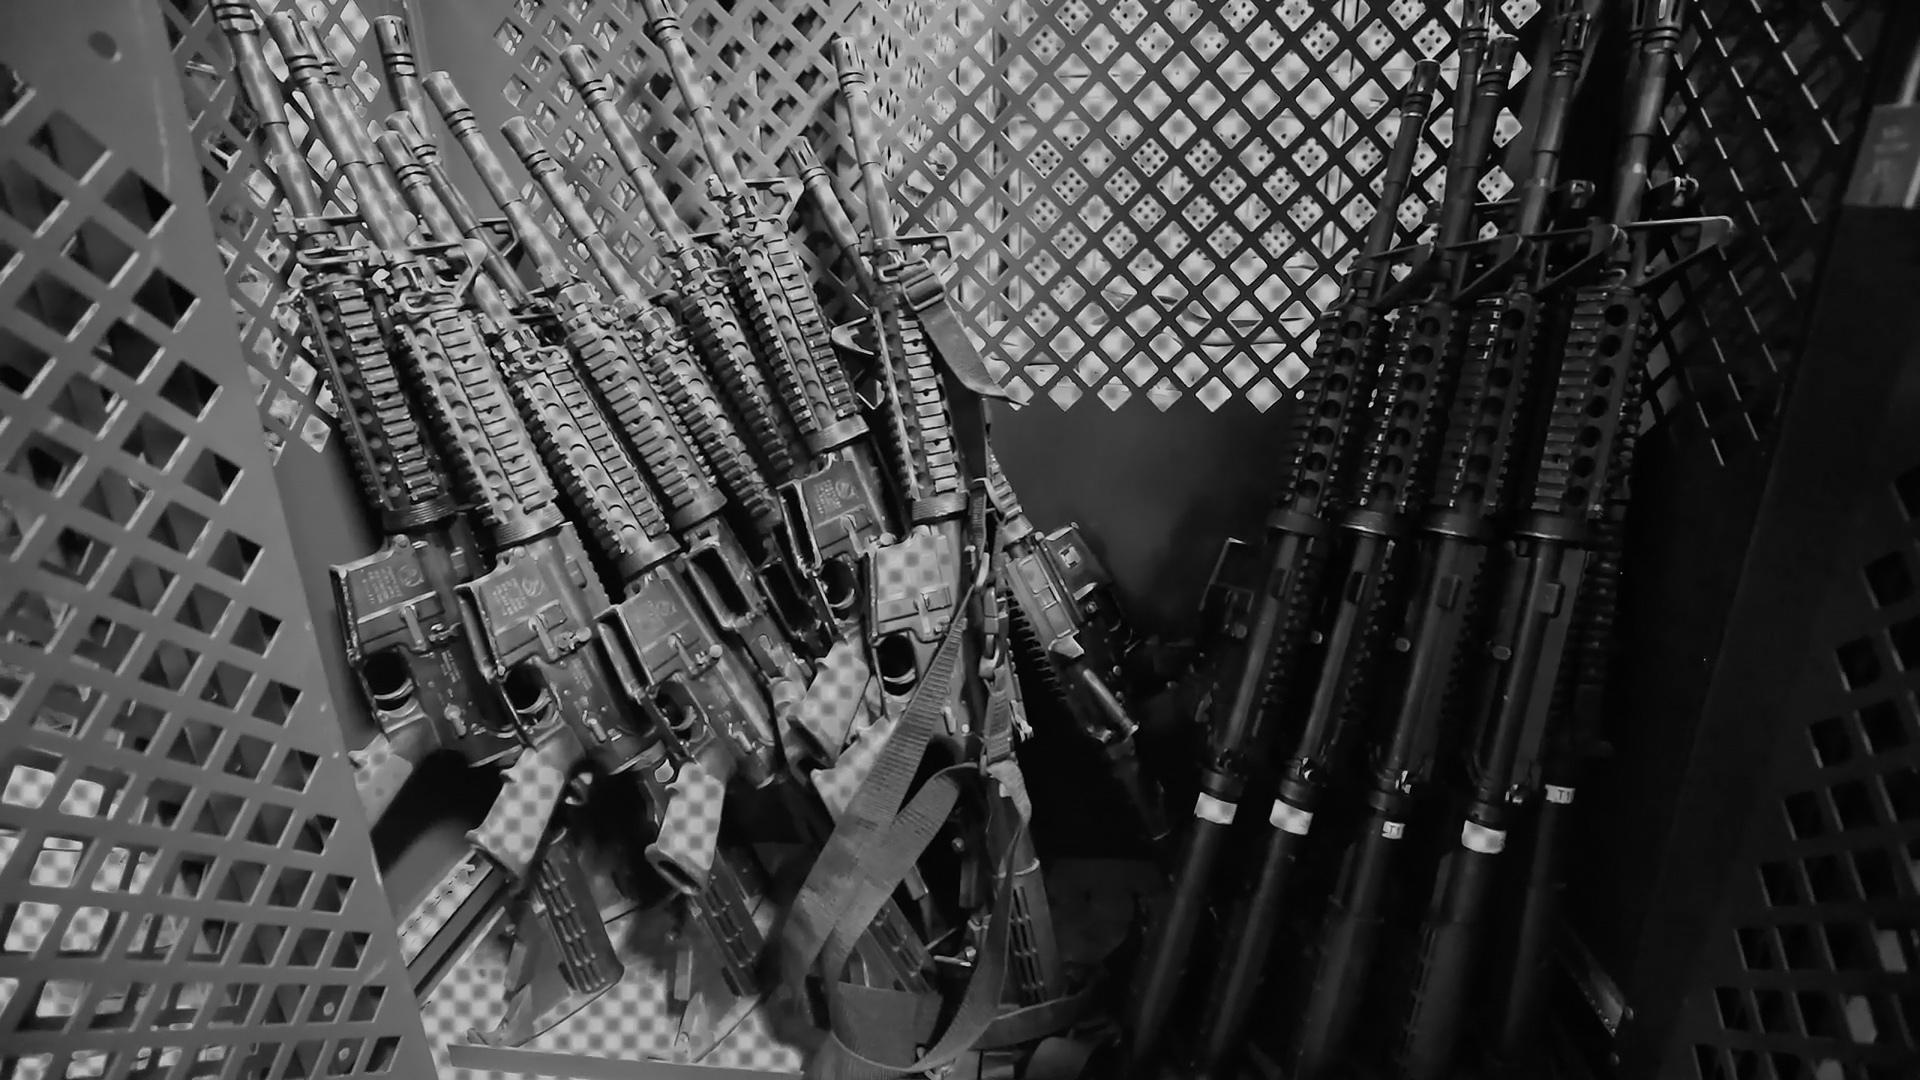 AWOL Weapons